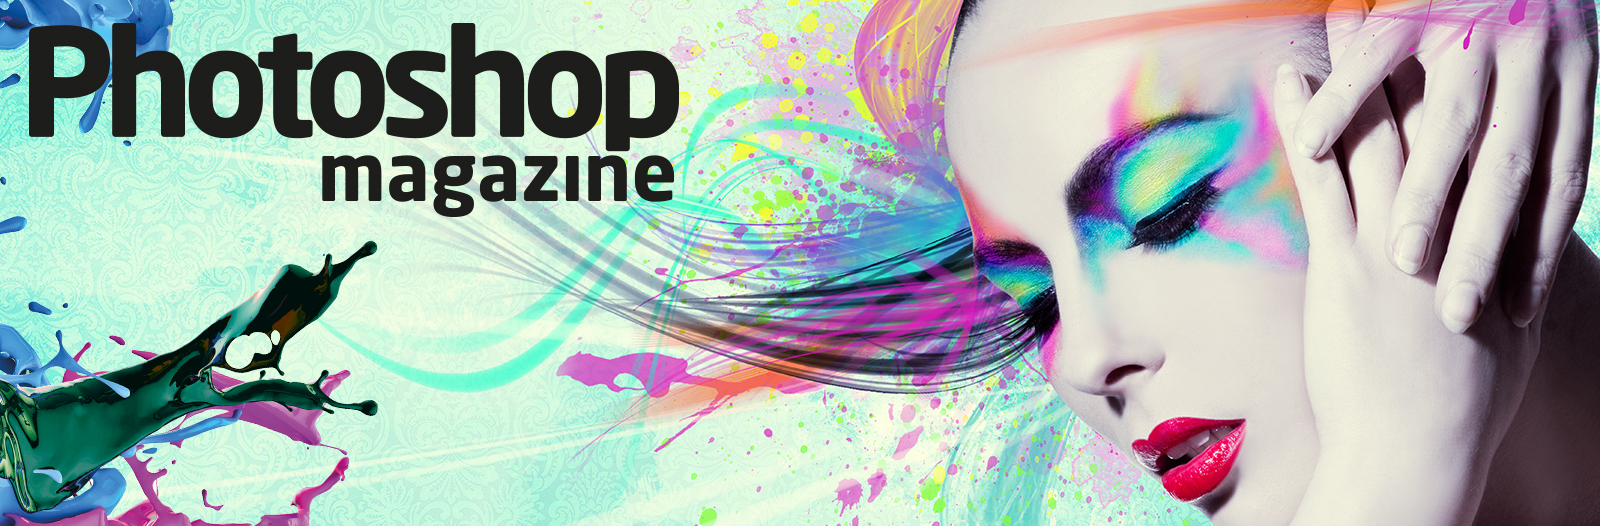 Photoshop Magazine specials